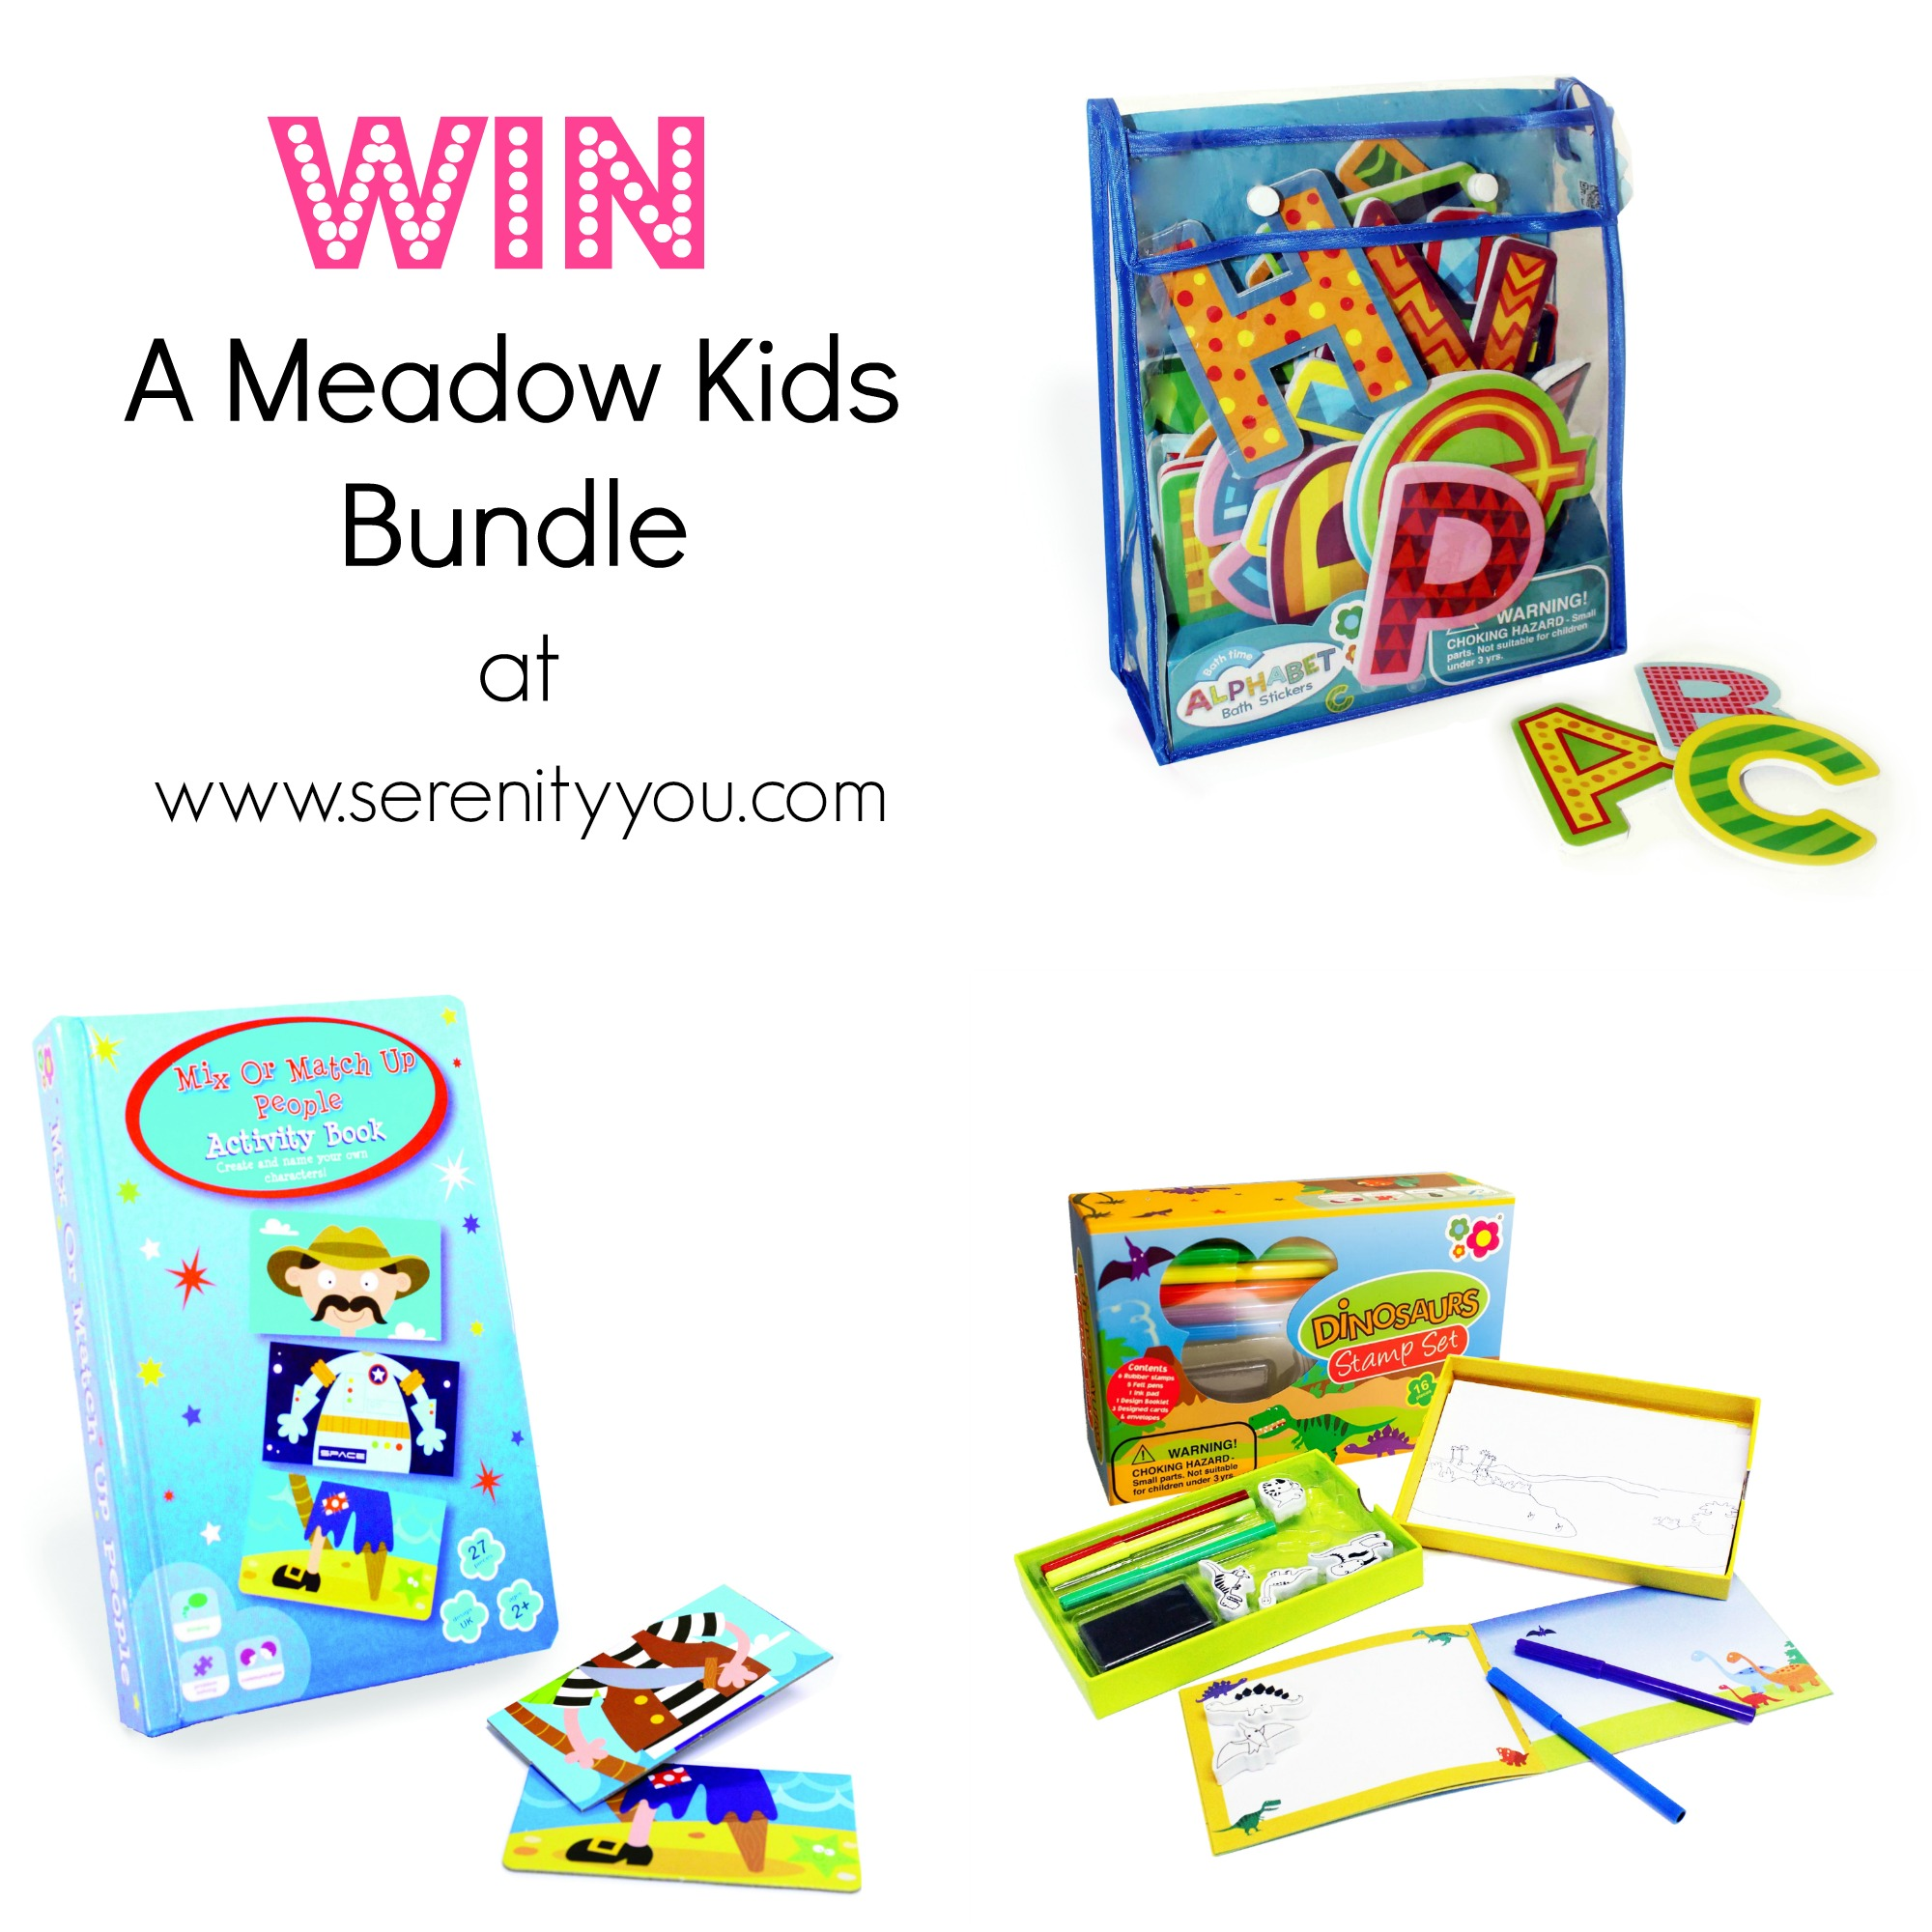 Win a Meadow Kids Toy bundle on Serenity You